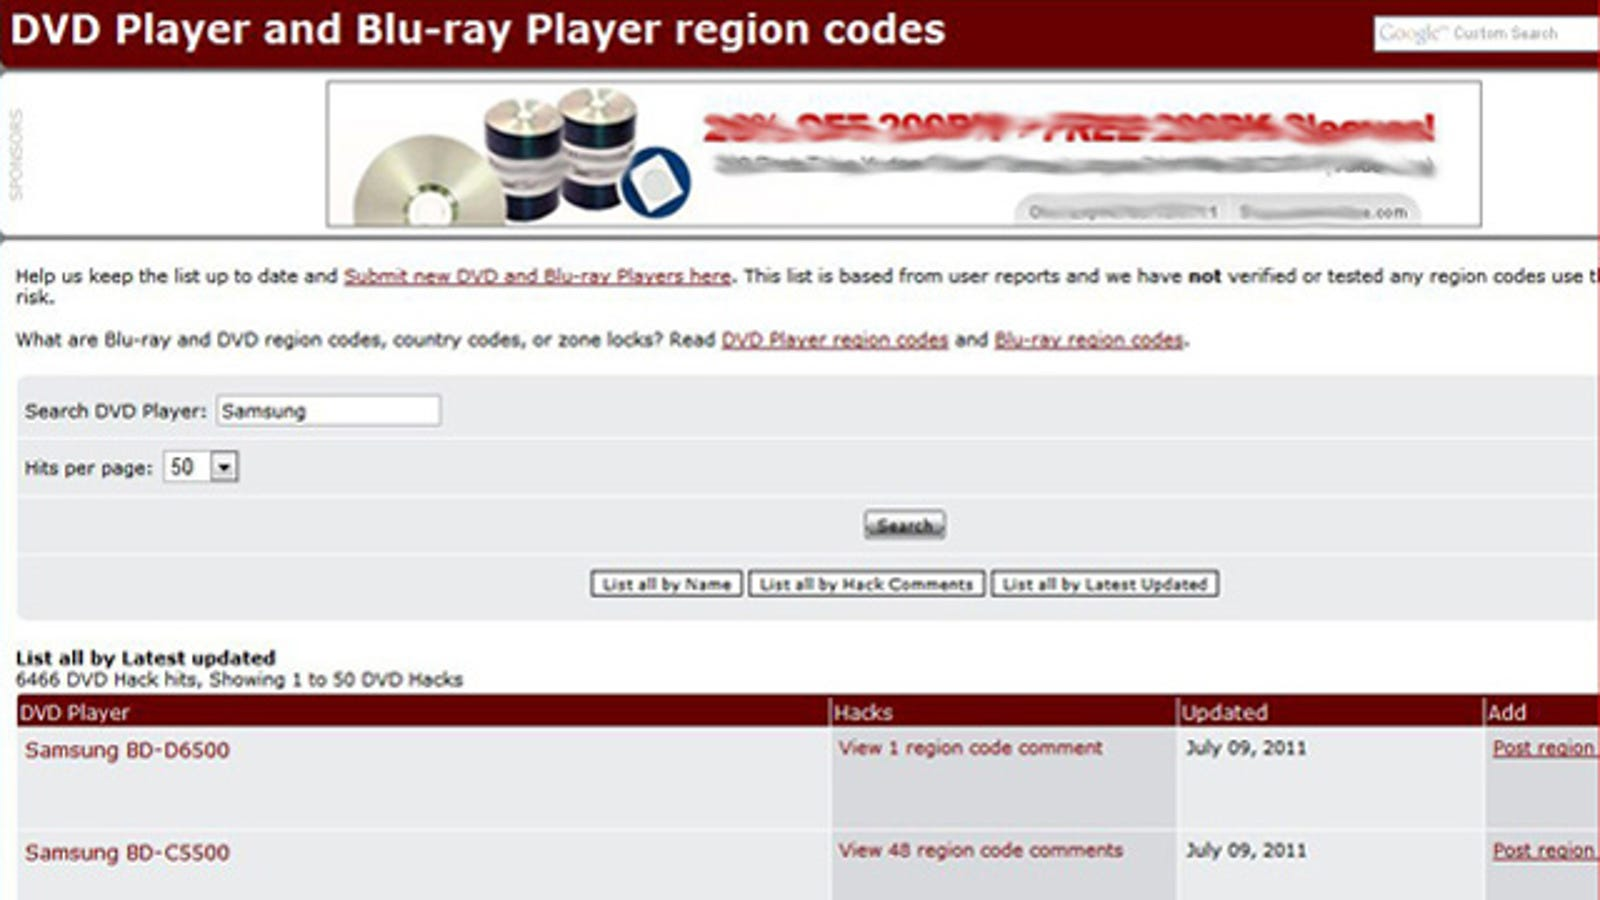 DVD Hacks Database Contains Instructions to Unlock Region